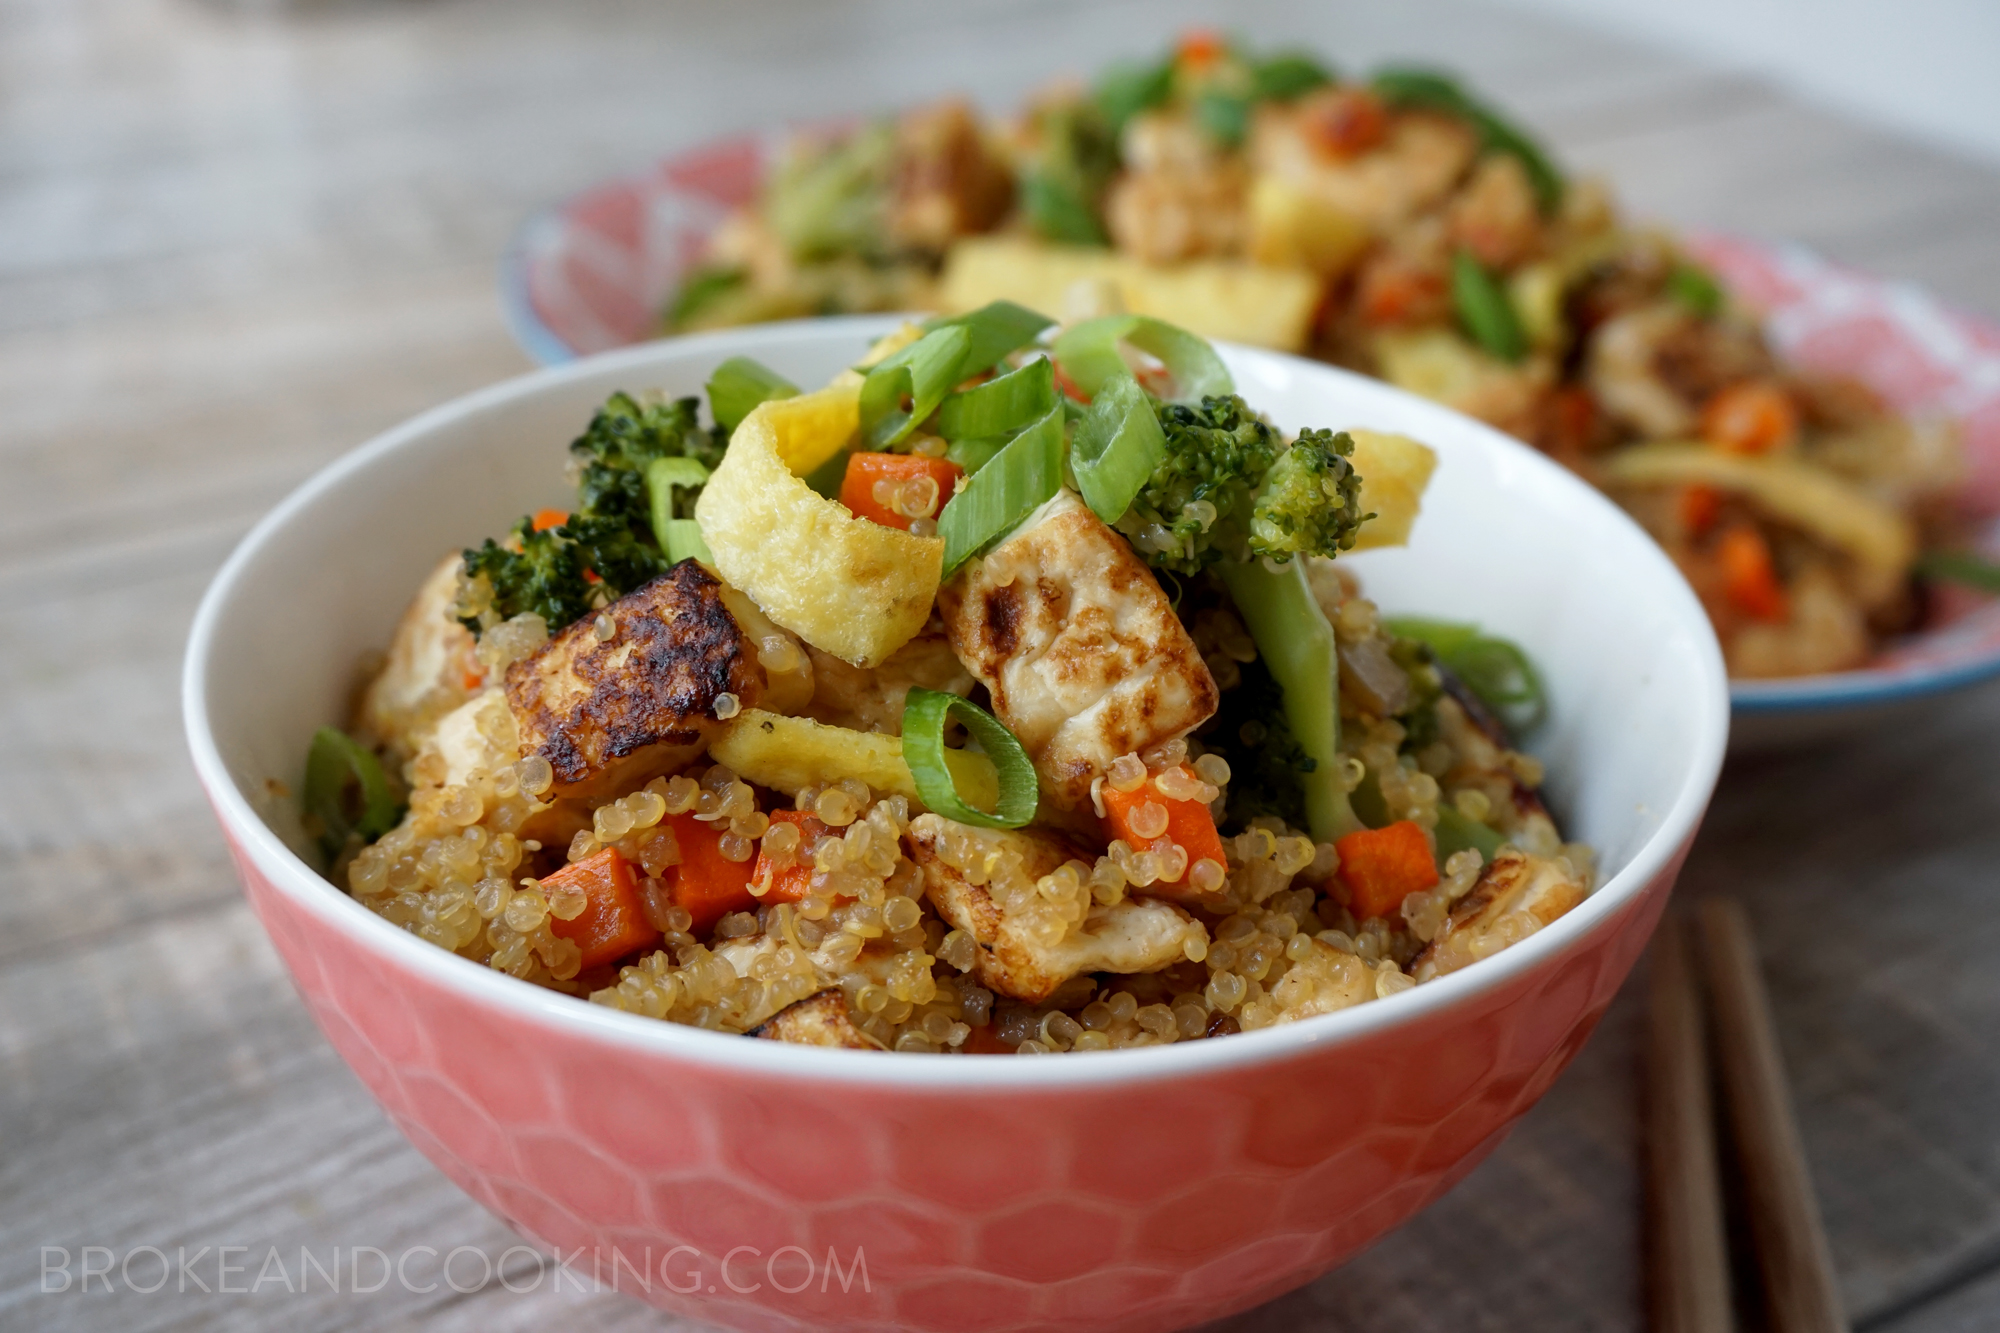 Broke and Cooking Quinoa Fried Rice 23